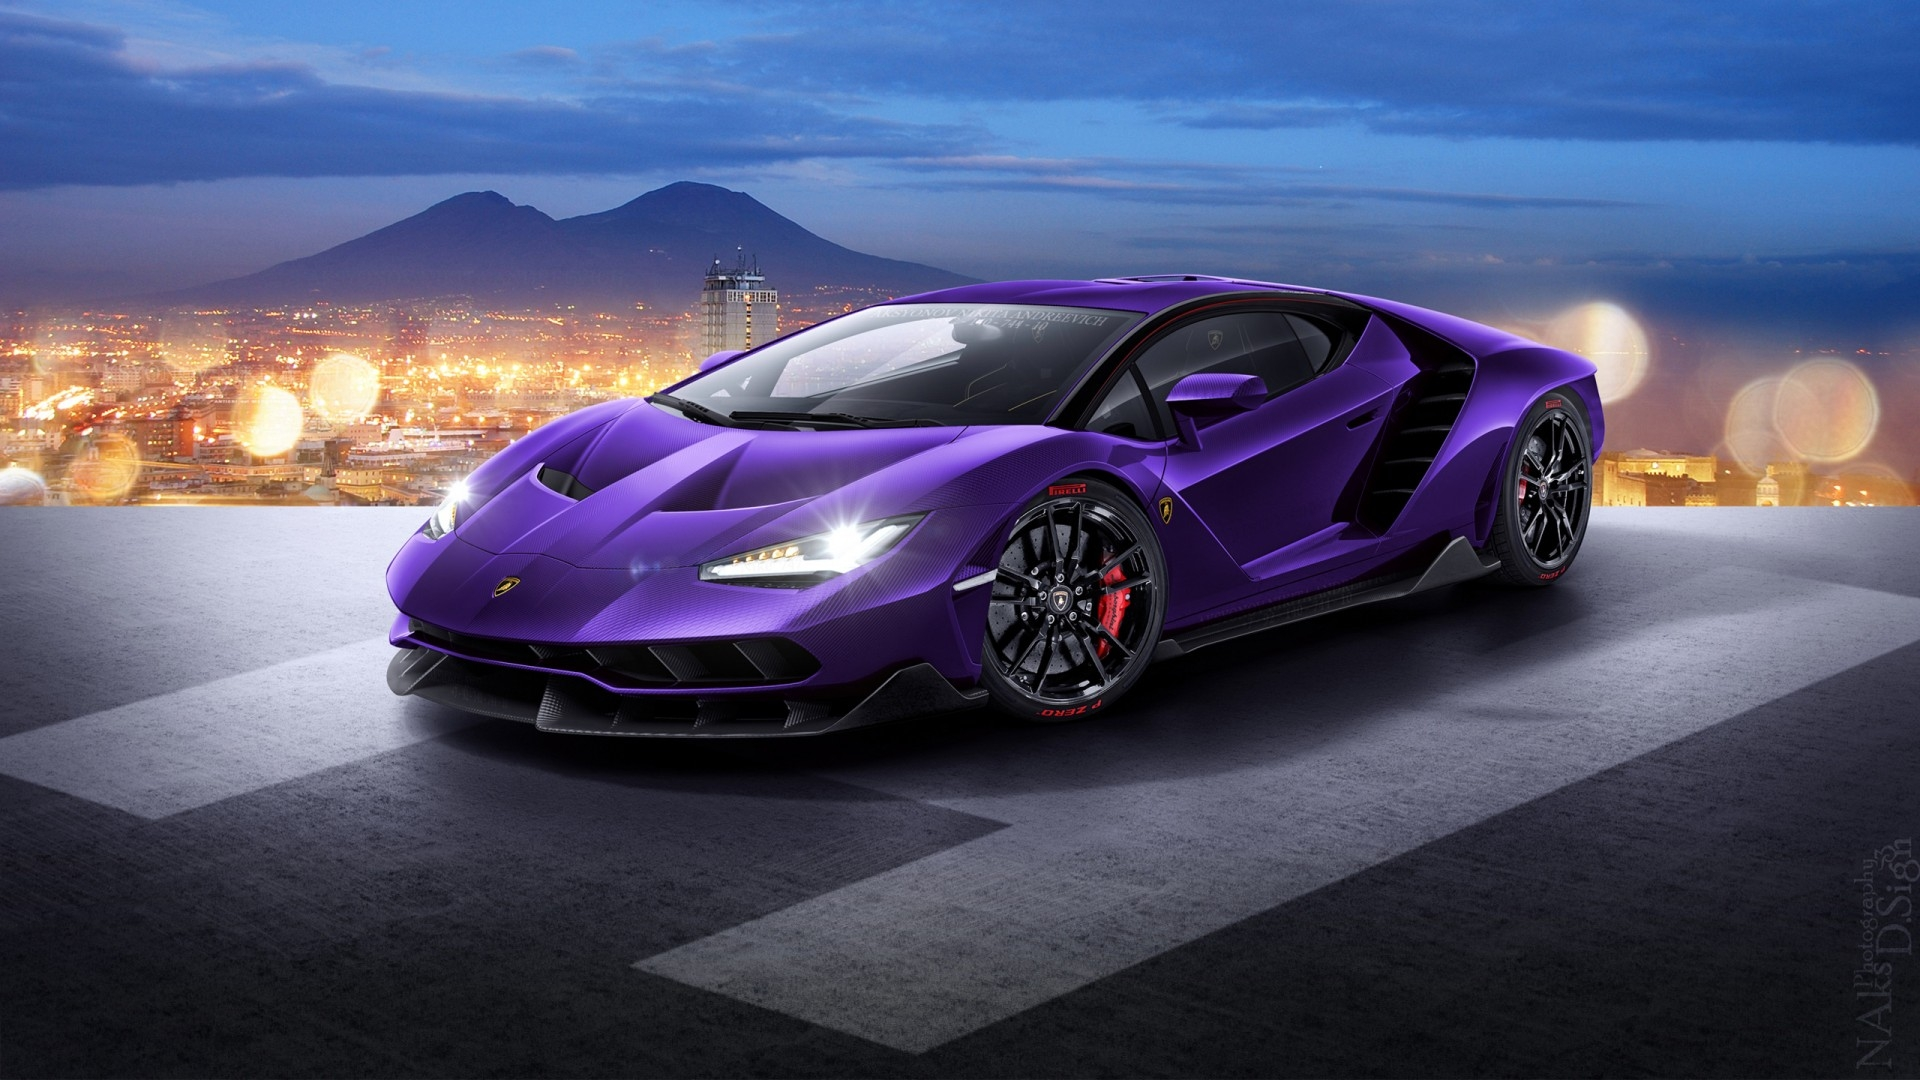 Purple Lamborghini Wallpapers Wallpapersafari